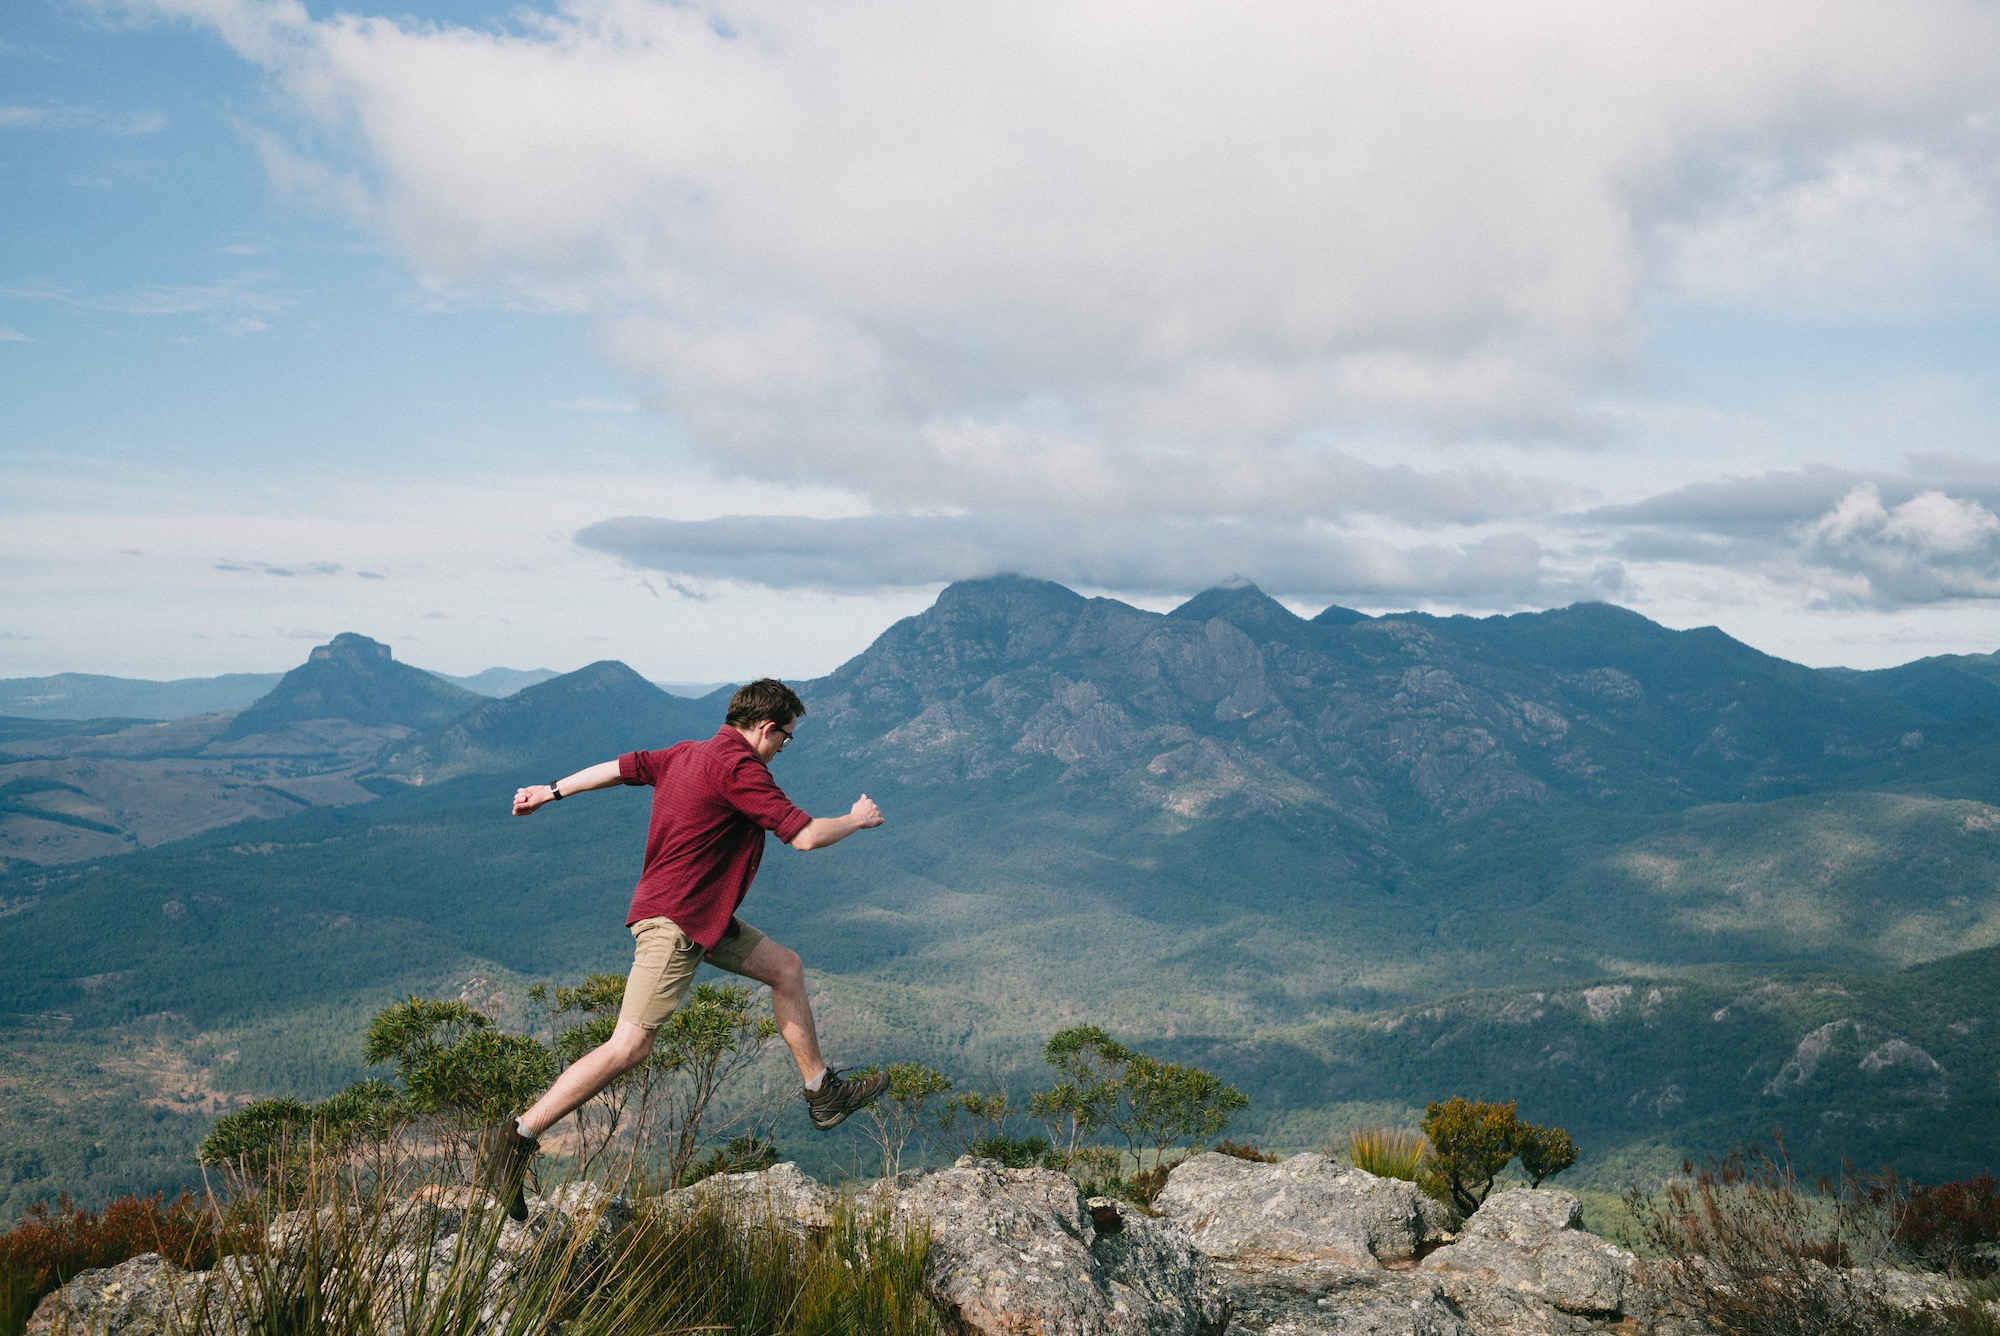 Me on Mount Maroon overlooking Mount Barney National Park in South East Queensland.